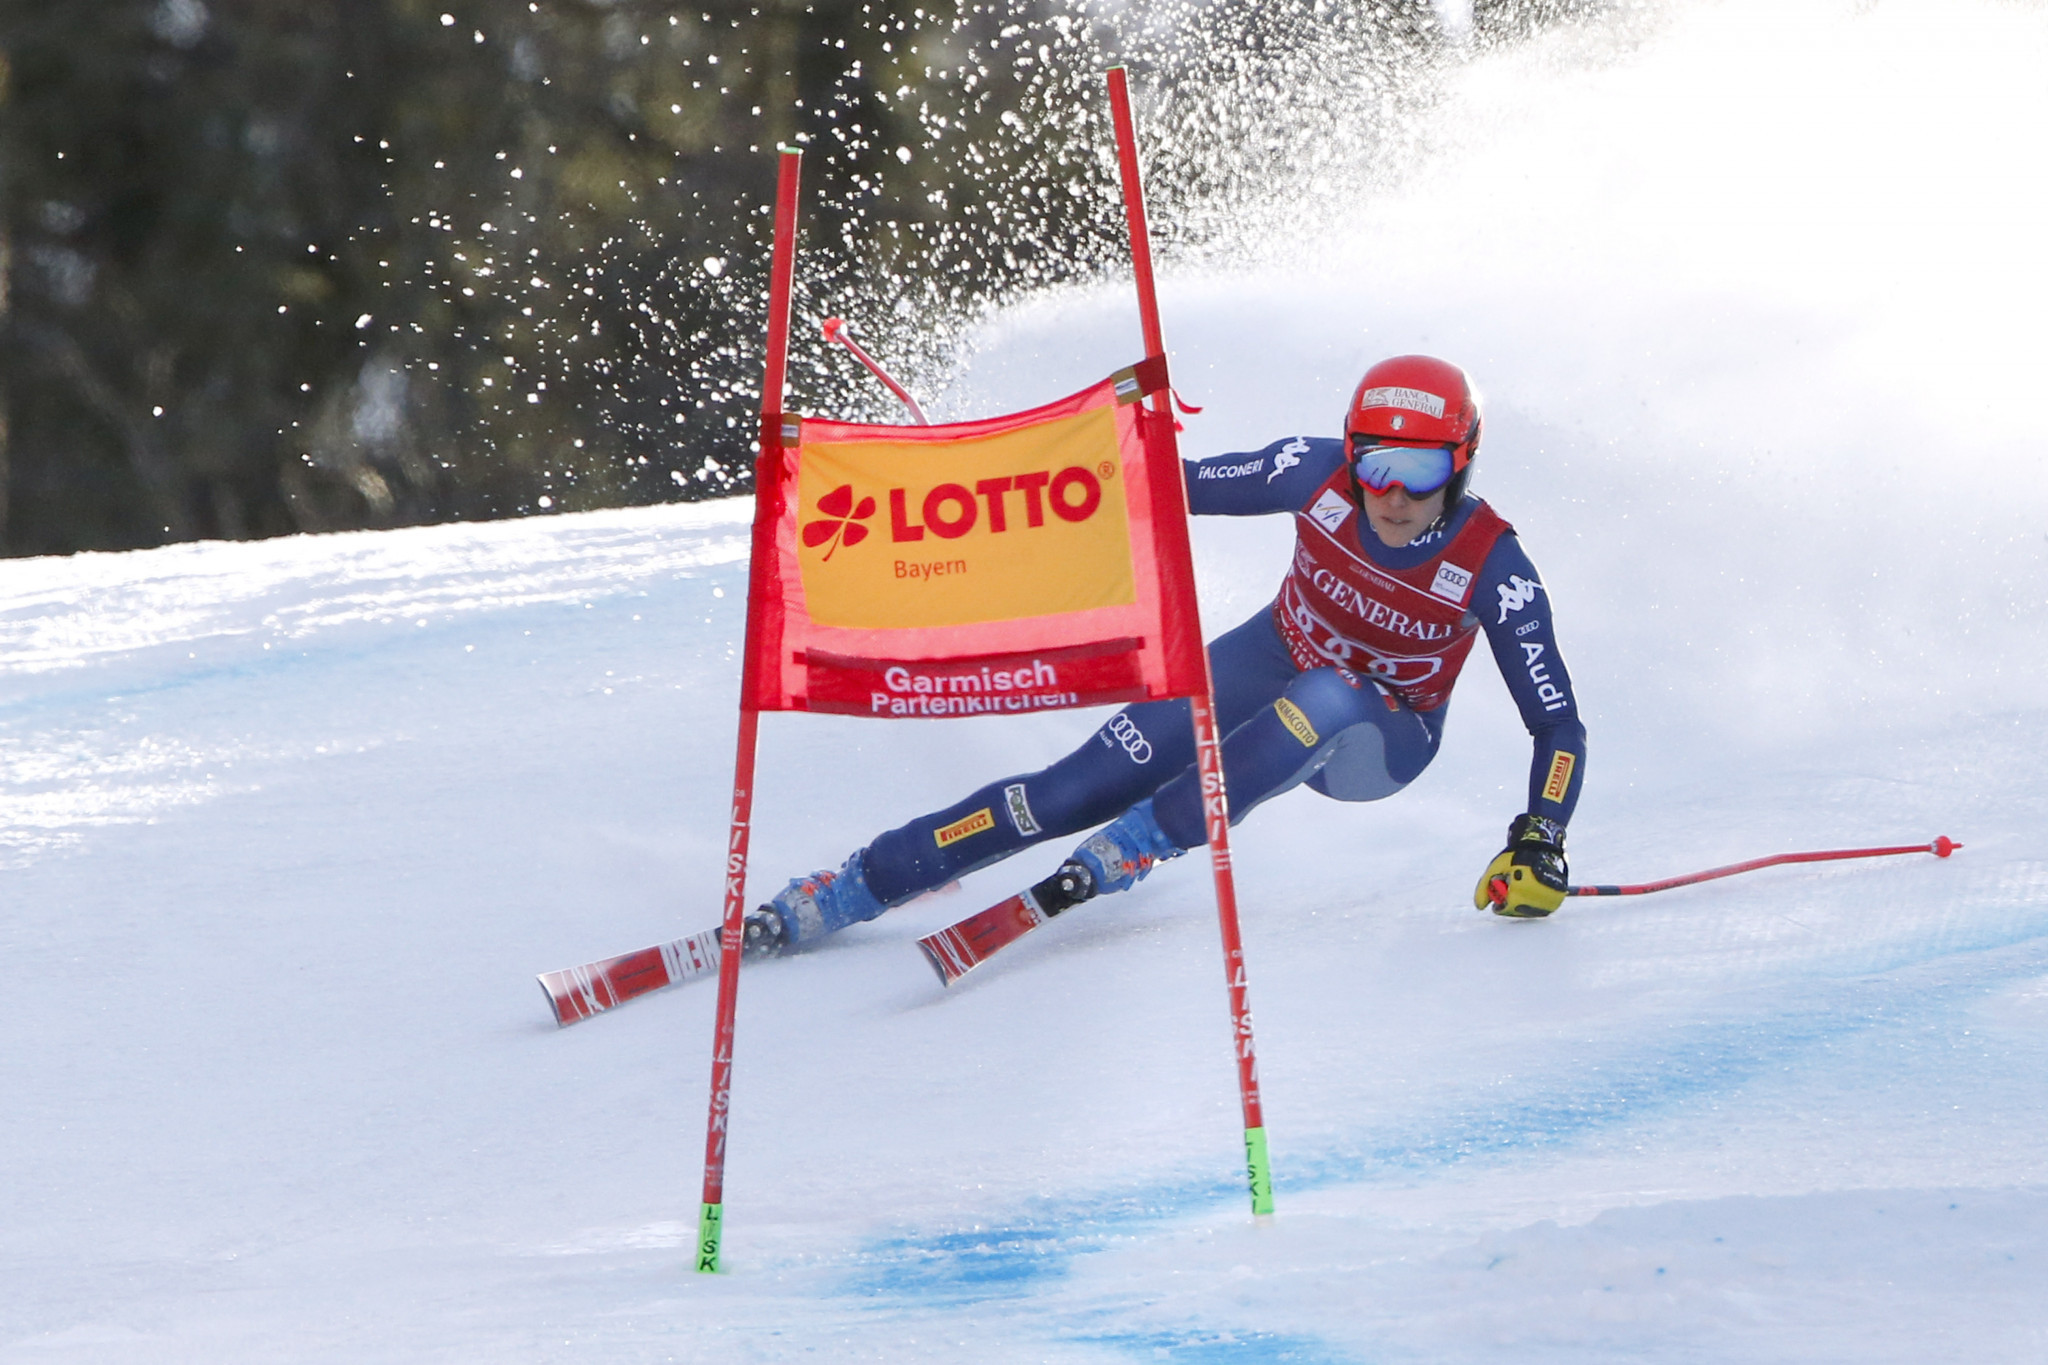 Federica Brignone of Italy slipped down to second in the Super-G seconds after a fifth place finish in Garmisch-Partenkirchen ©Getty Images